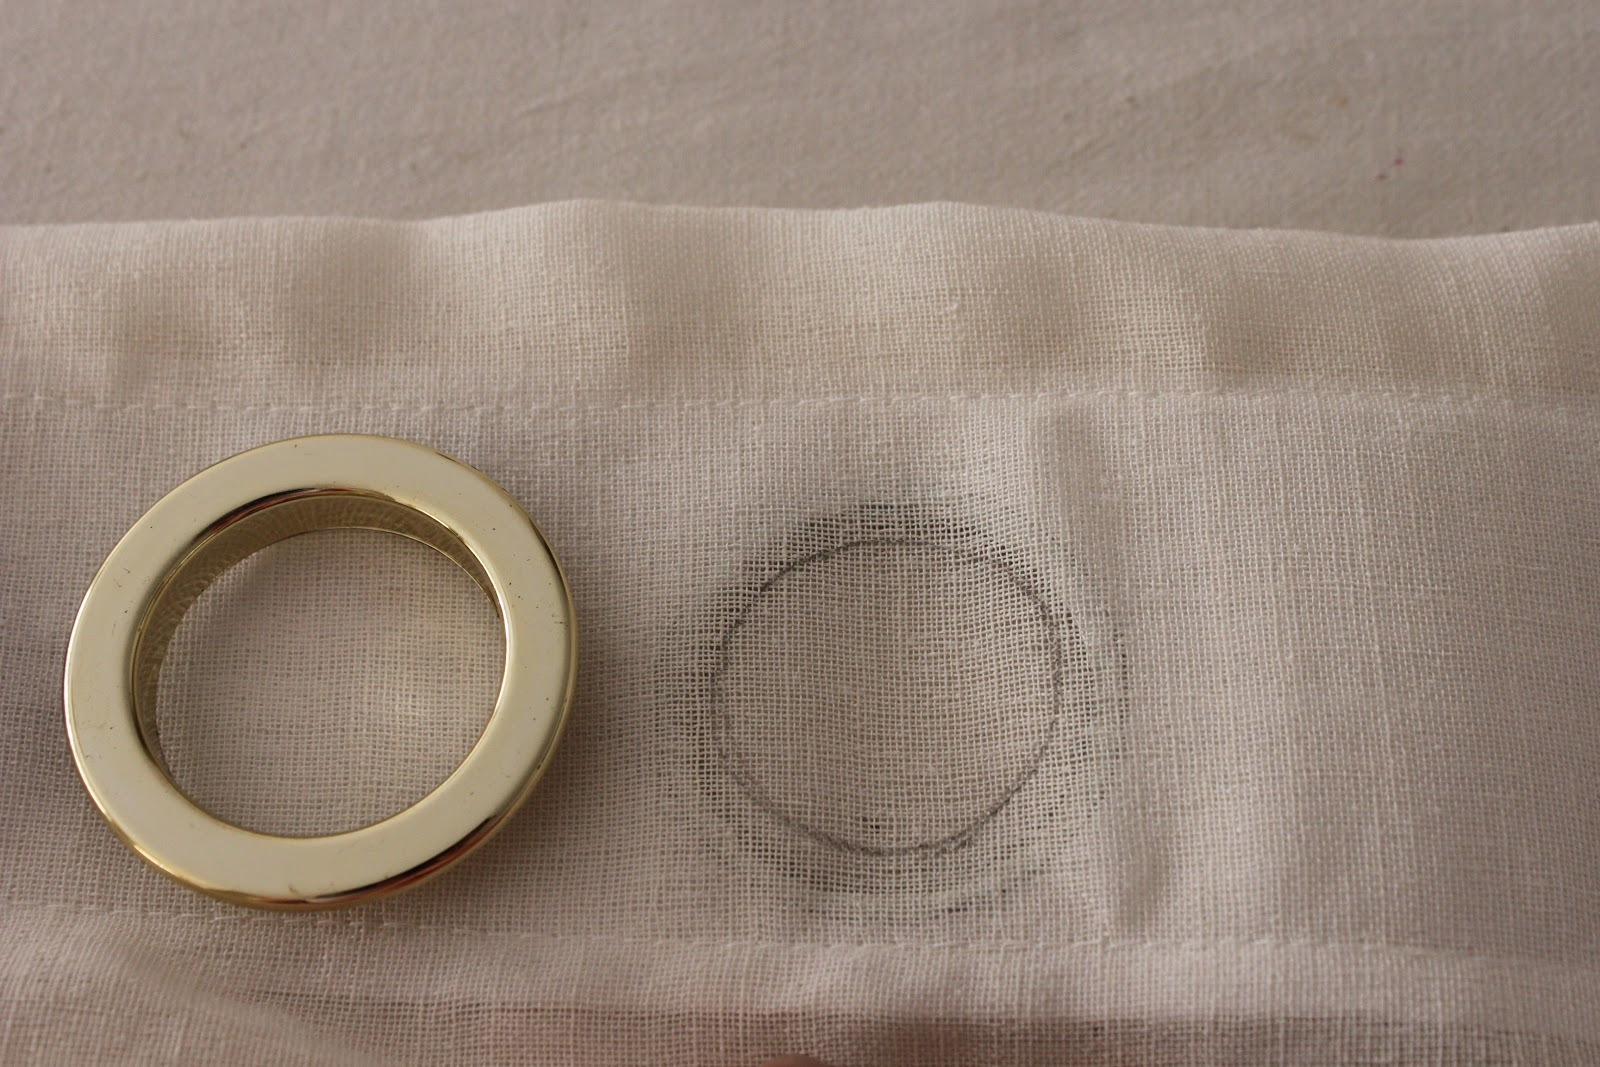 Curtain eyelet rings - I Was Worried About Fraying So I Went Around The Circle Lightly With A Glue Stick